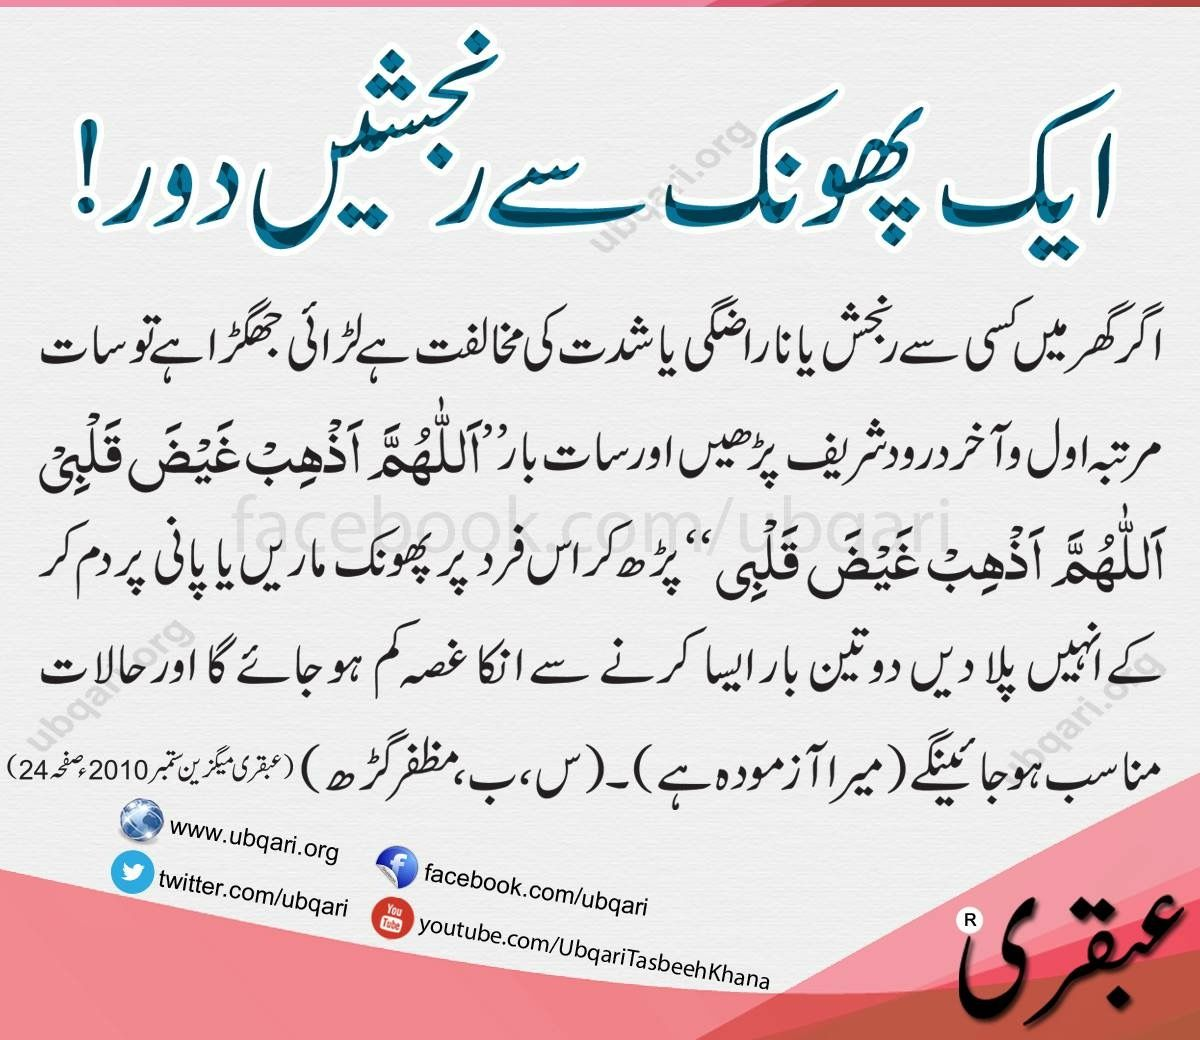 Pin by Afreen Khan on Islamic Knowledge   Islamic messages ...